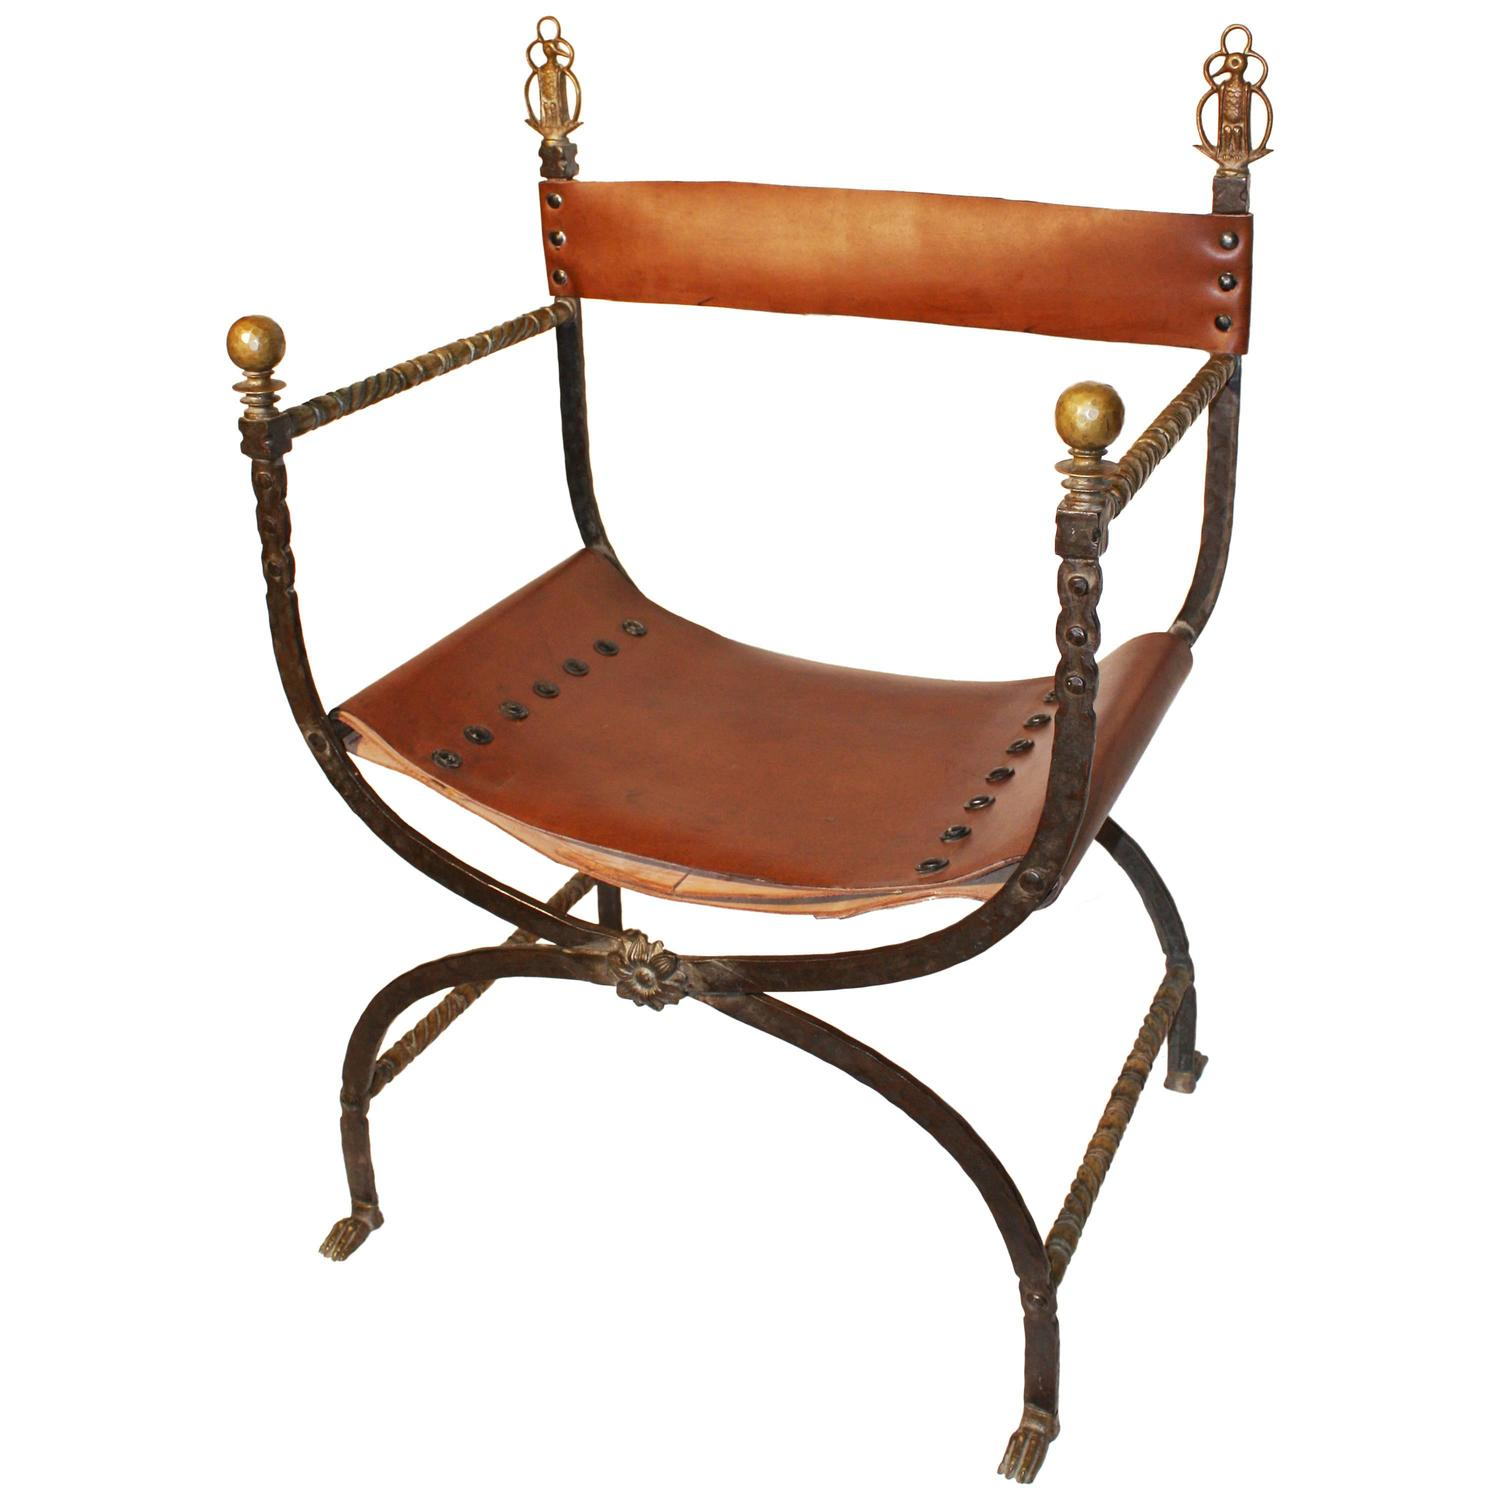 Bronze Chairs - 89 For Sale at 1stdibs